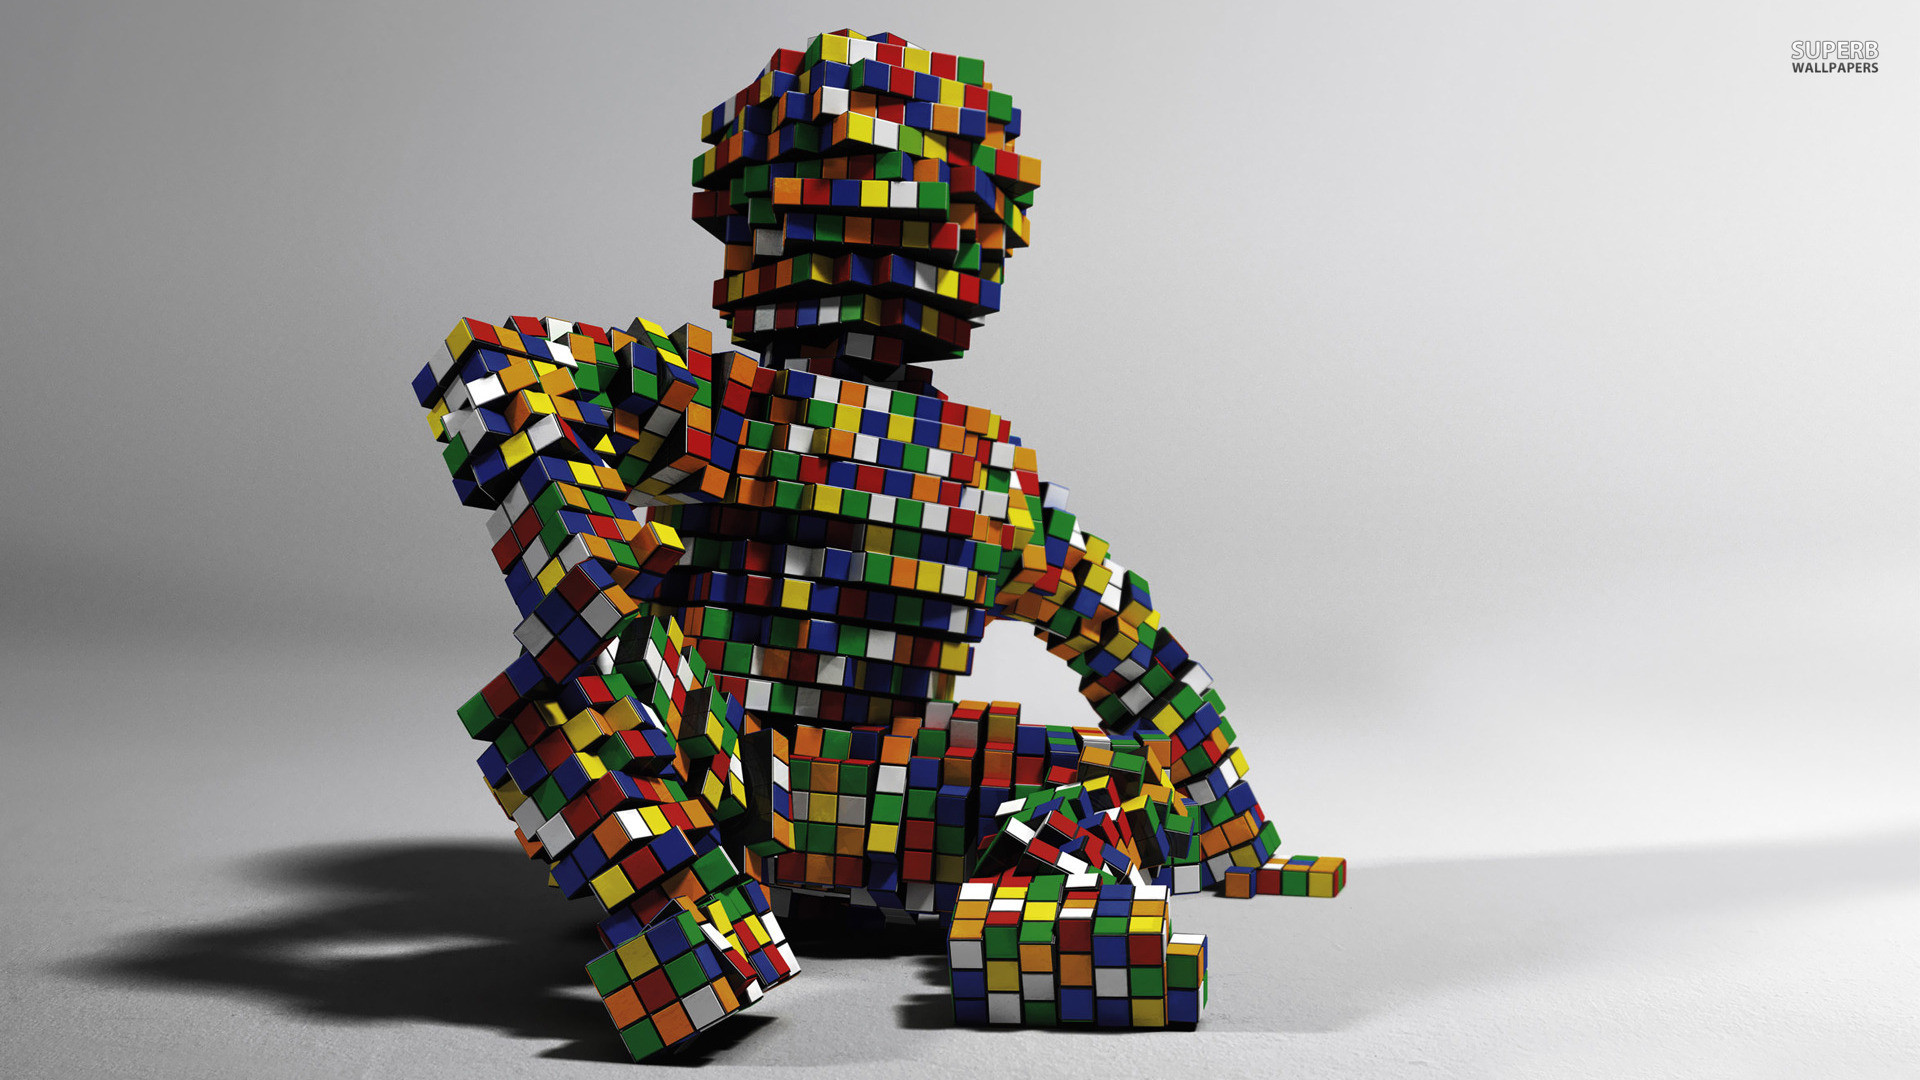 Rubiks Cube Figure. How to set wallpaper on your desktop? Click  the download link from above and set the wallpaper on the desktop from your  OS.